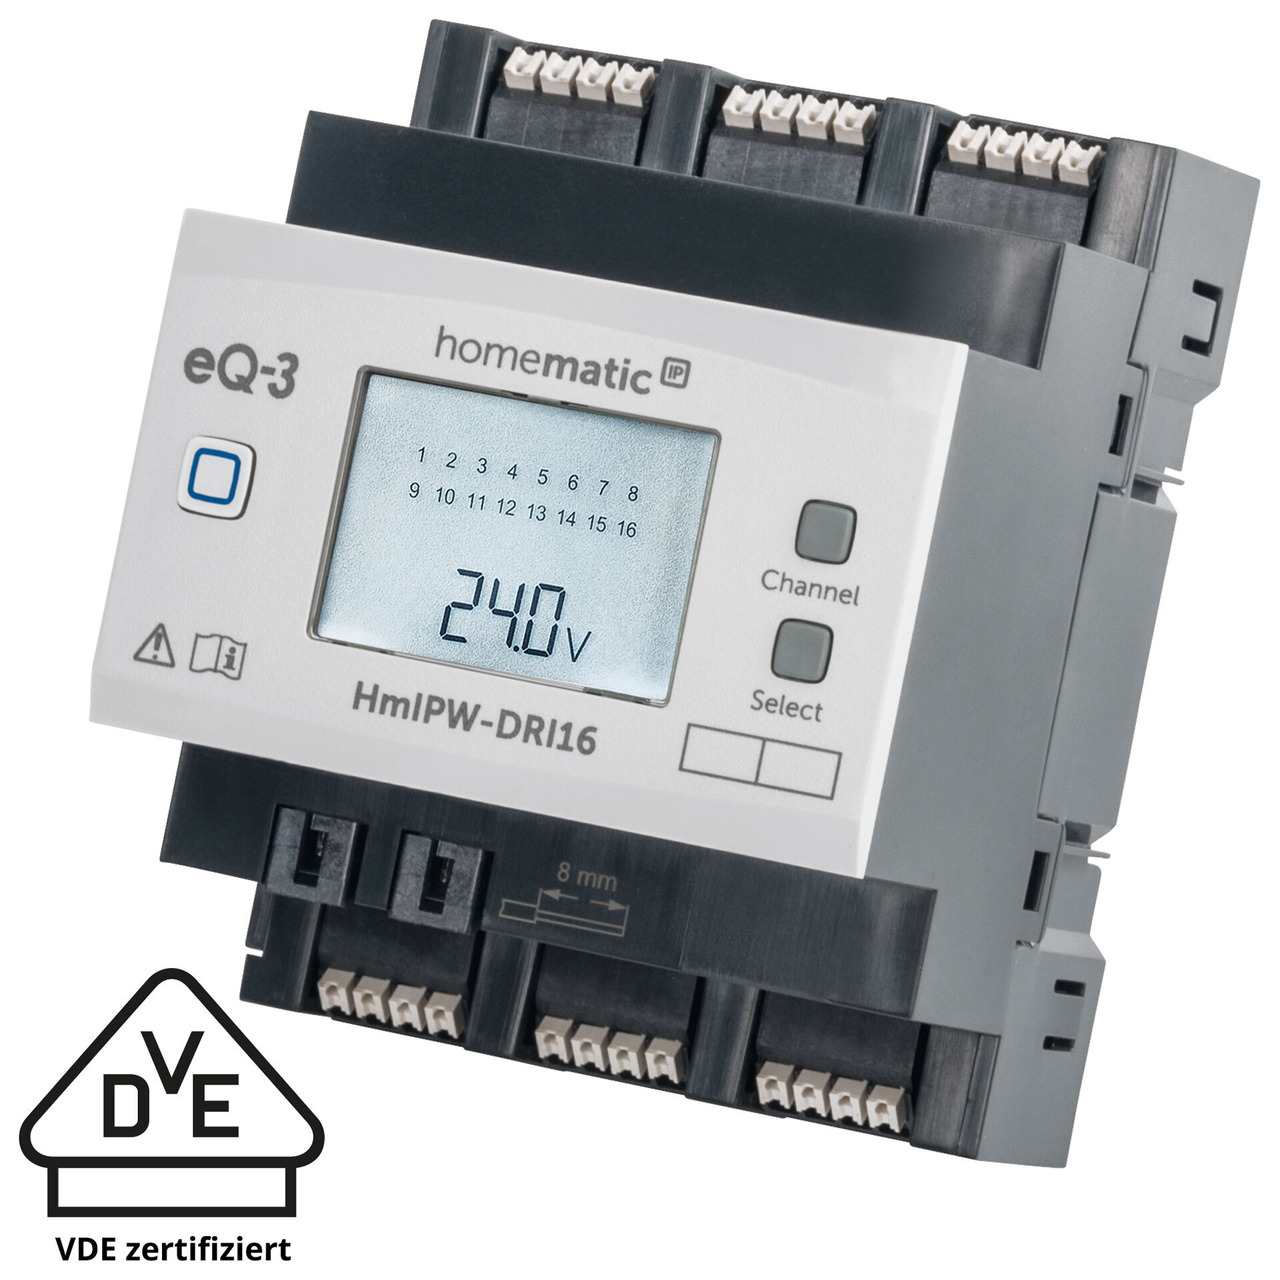 Homematic IP Wired 16-fach-Eingangsmodul HmIPW-DRI16- VDE zertifiziert